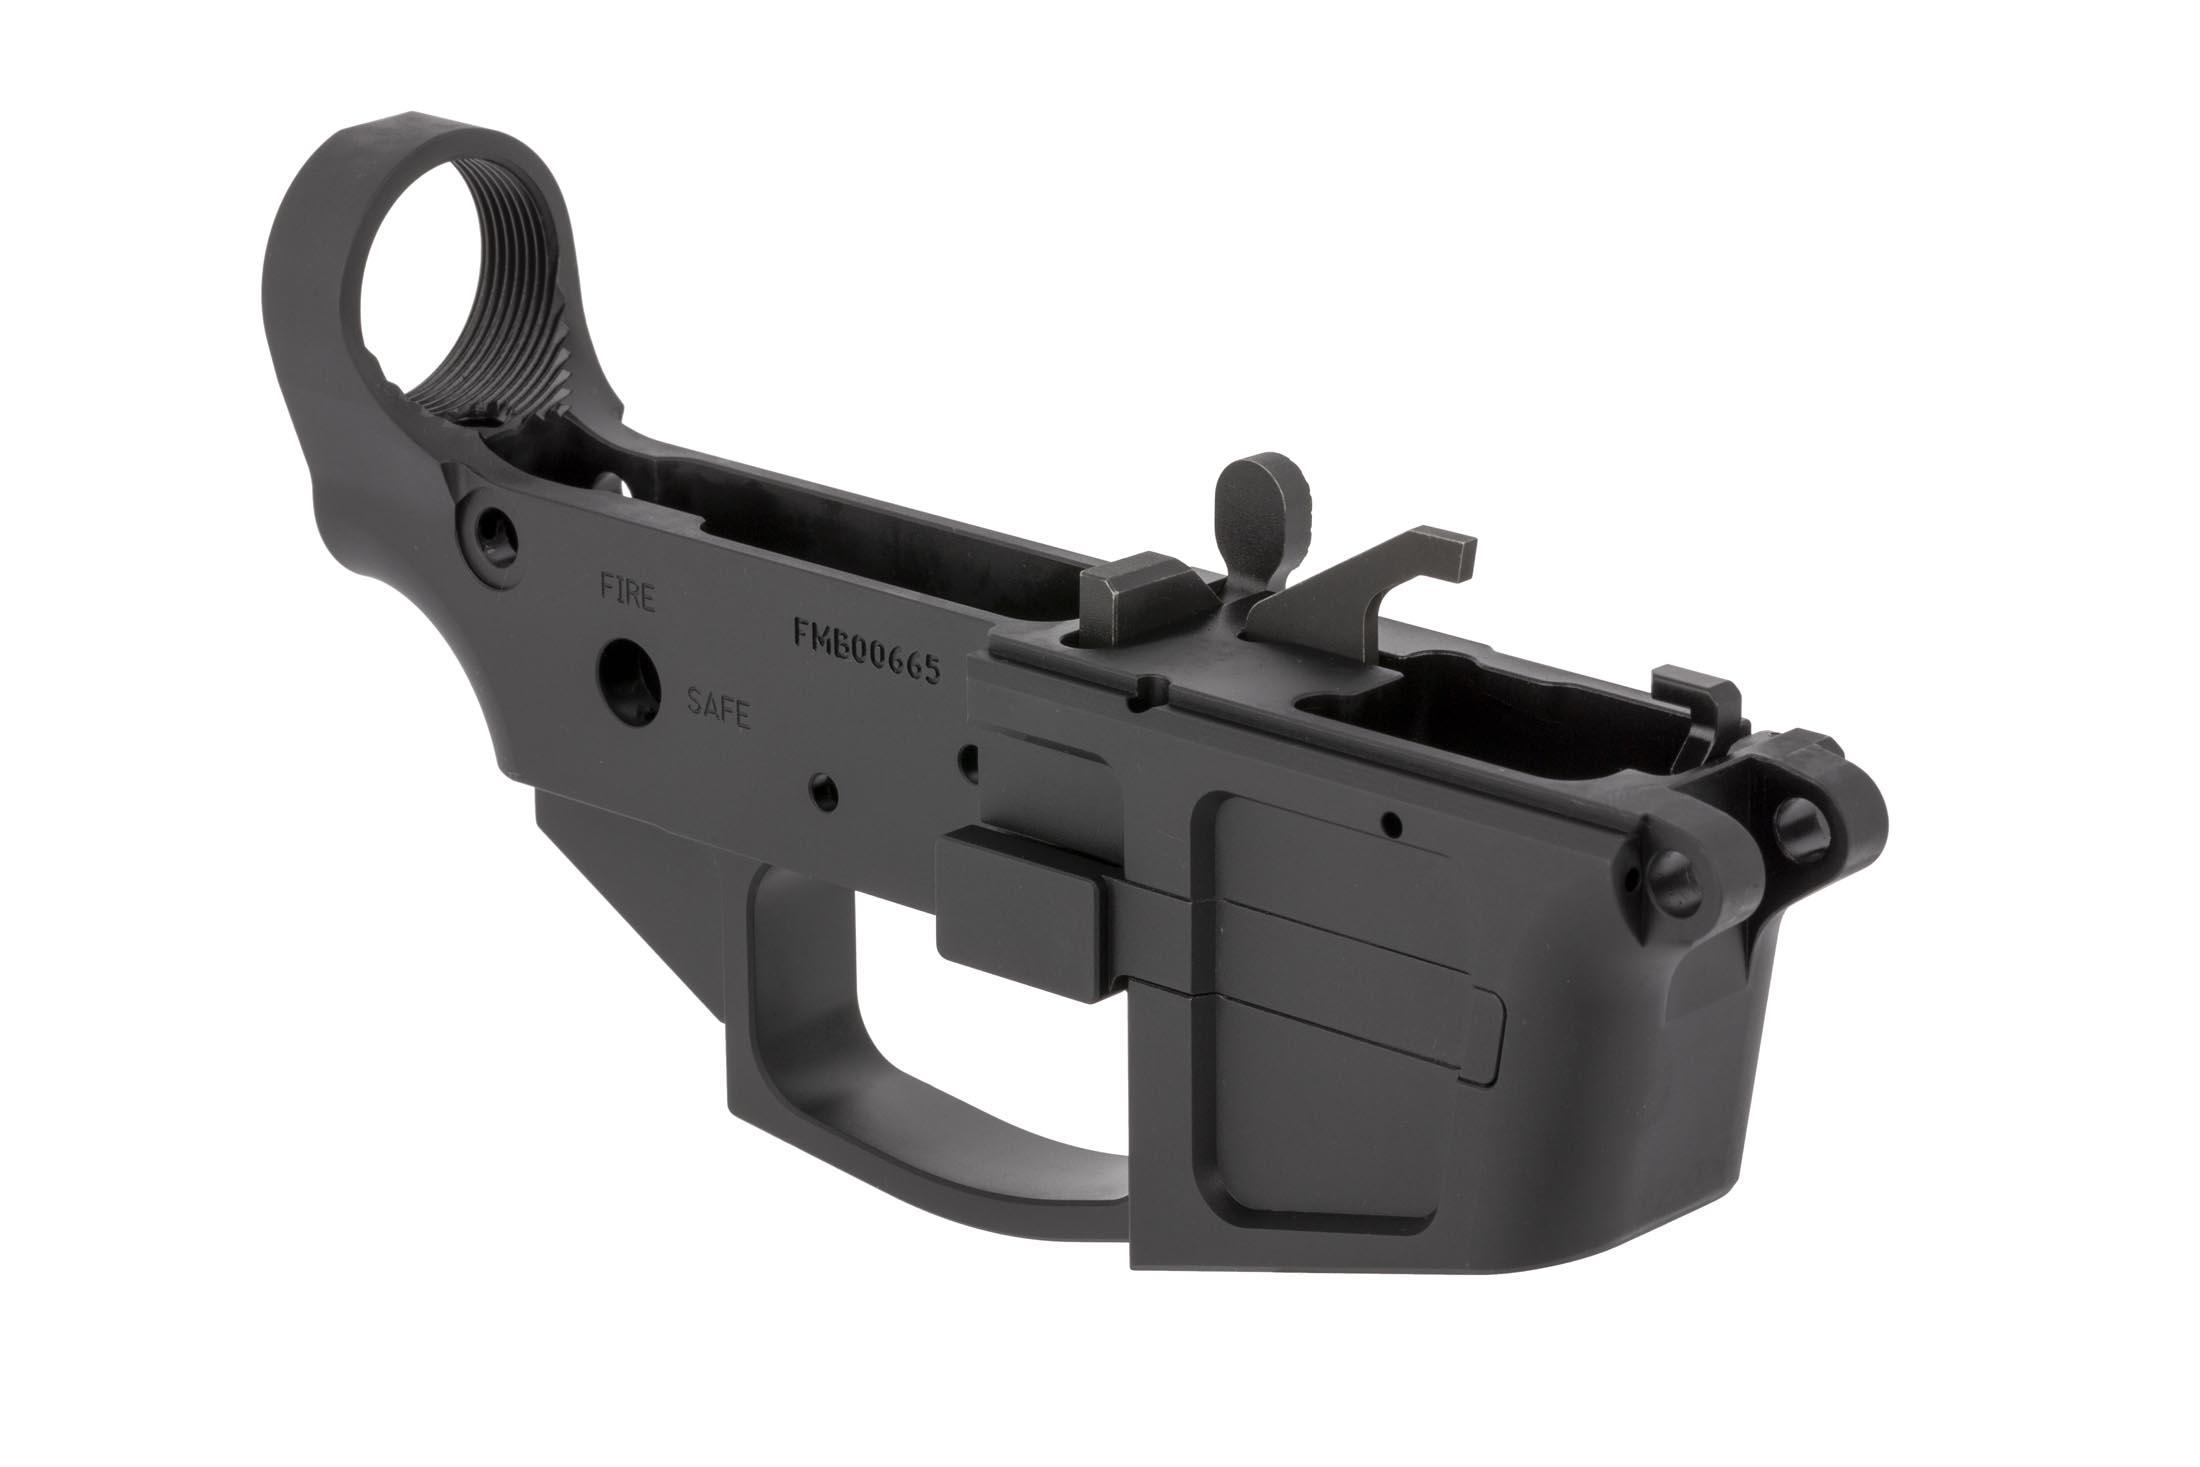 Foxtrot Mike Products FM-9B stripped Glock-magazine lower receiver accepts your favorite grips, safeties, and triggers